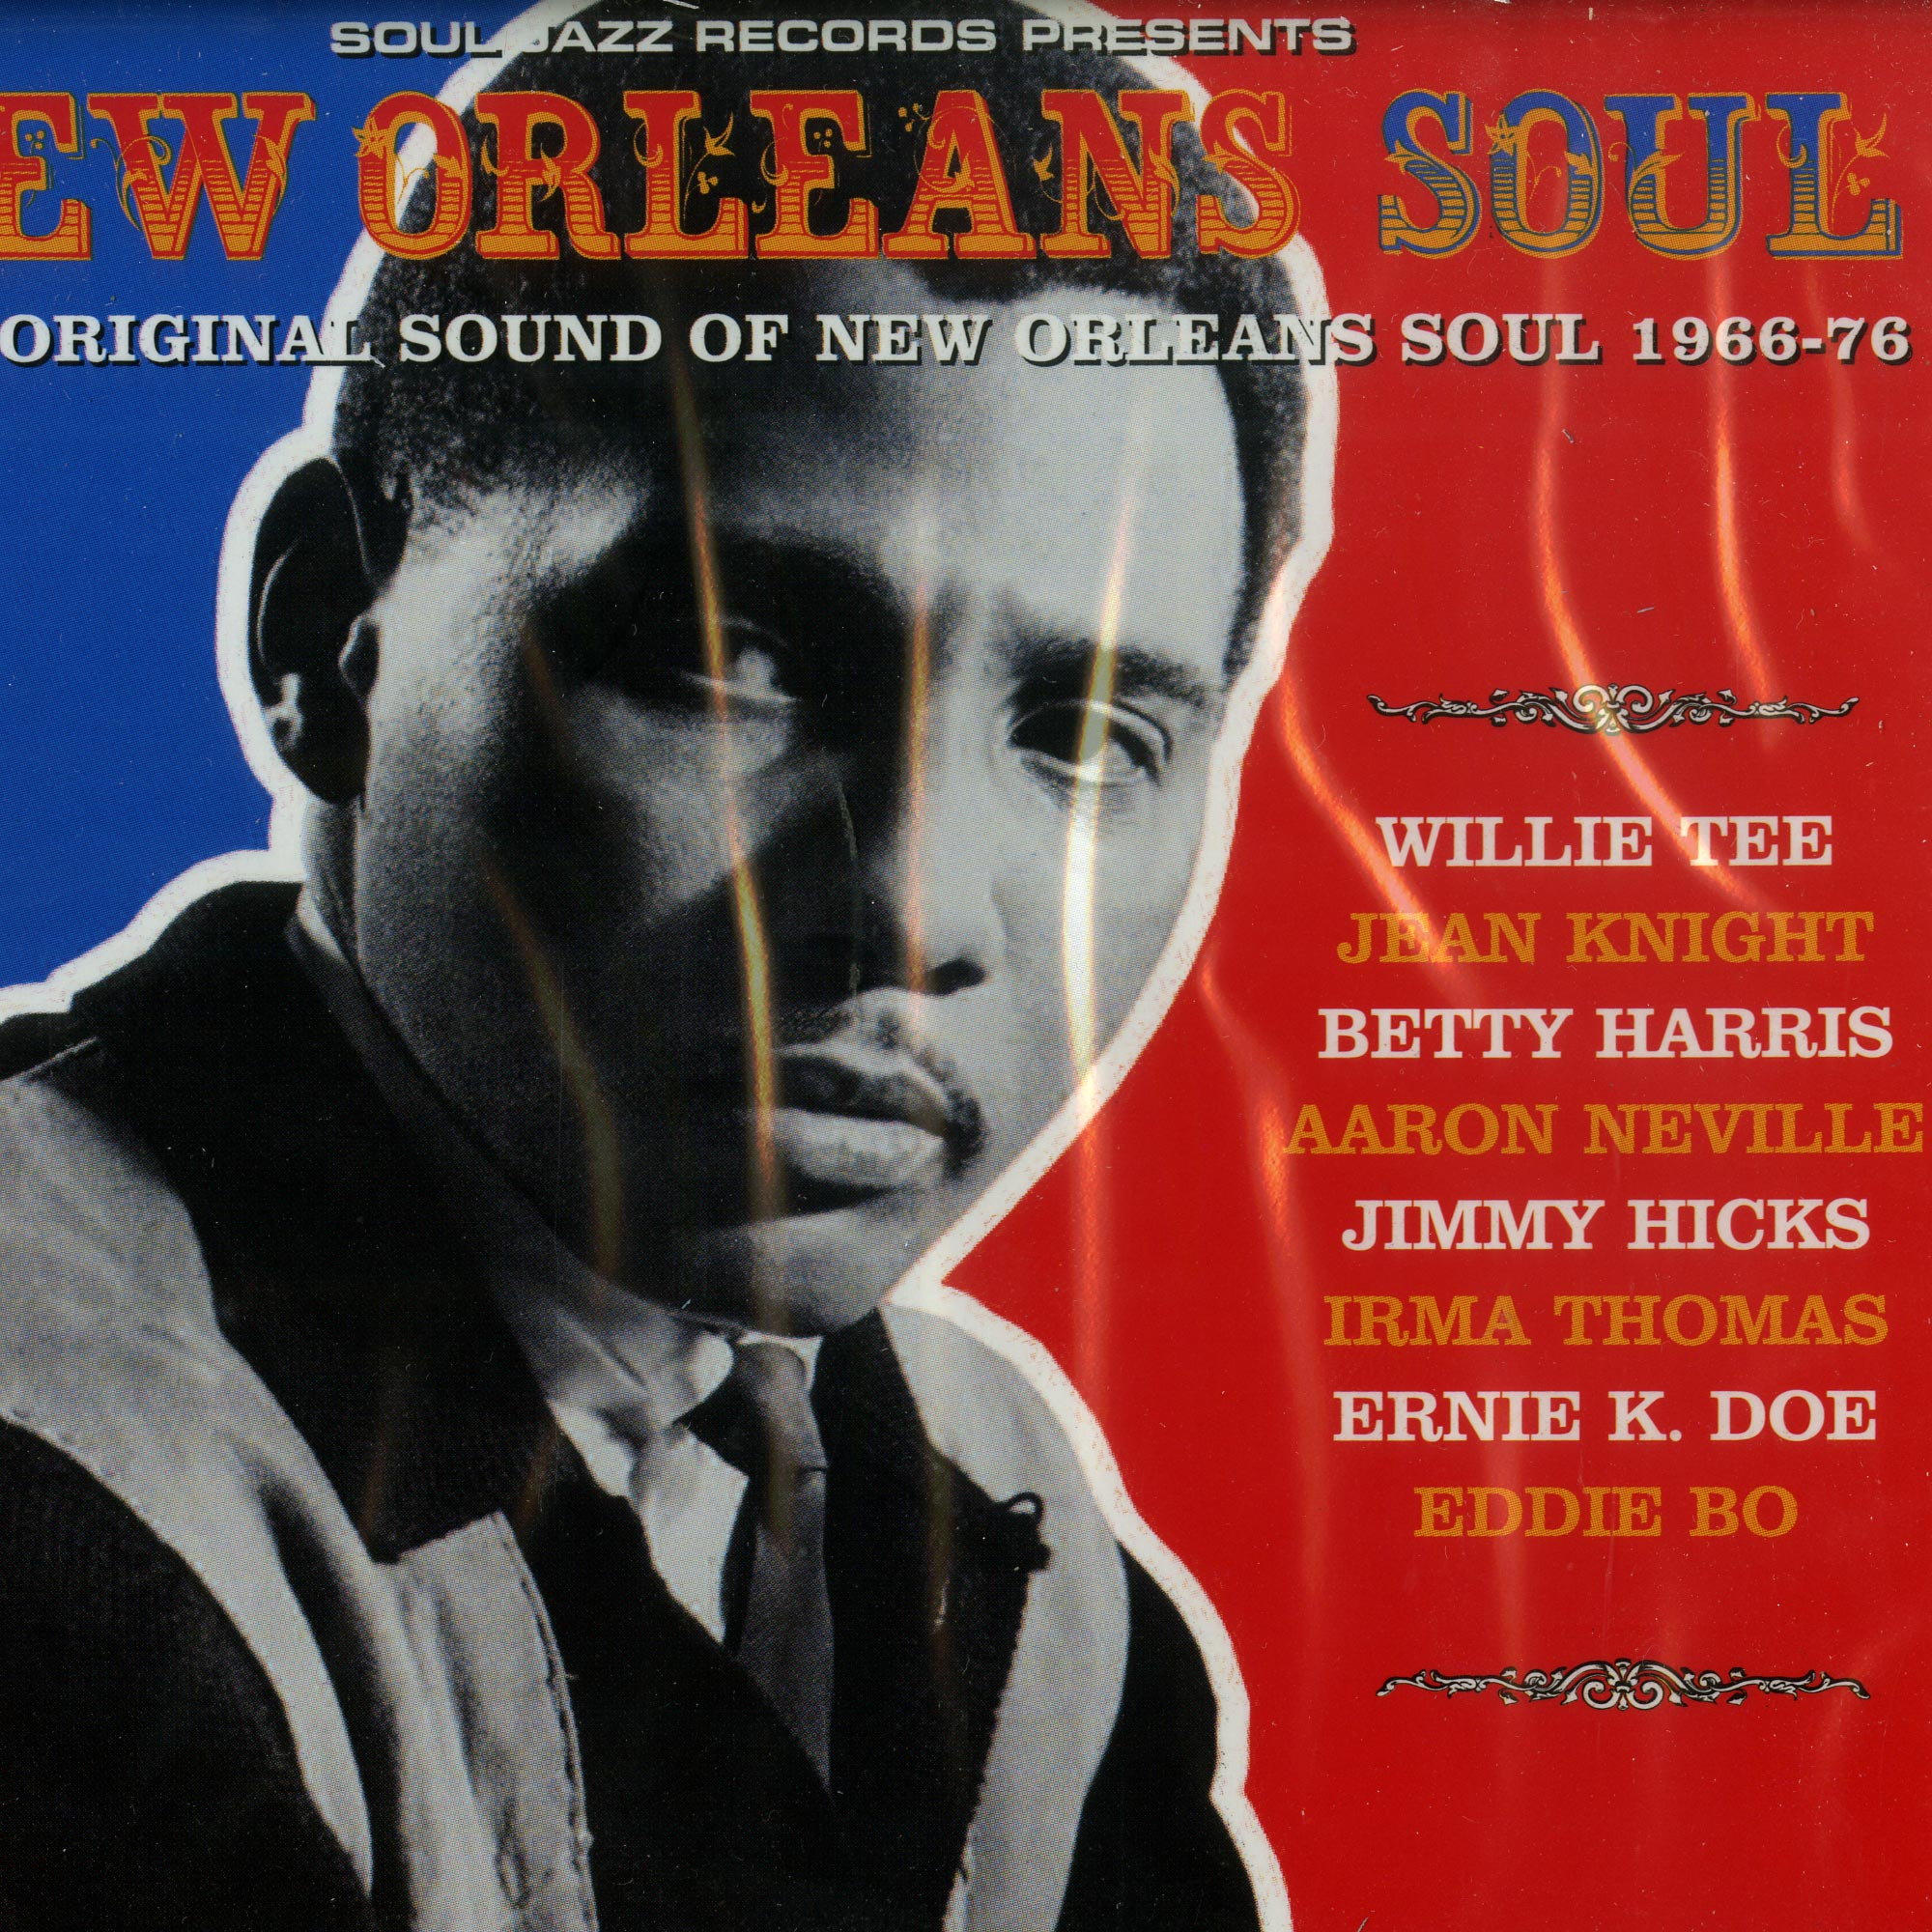 Various Artists - NEW ORLEANS SOUL: THE ORIGINAL SOUND OF NEW ORLEANS SOUL 1966-76